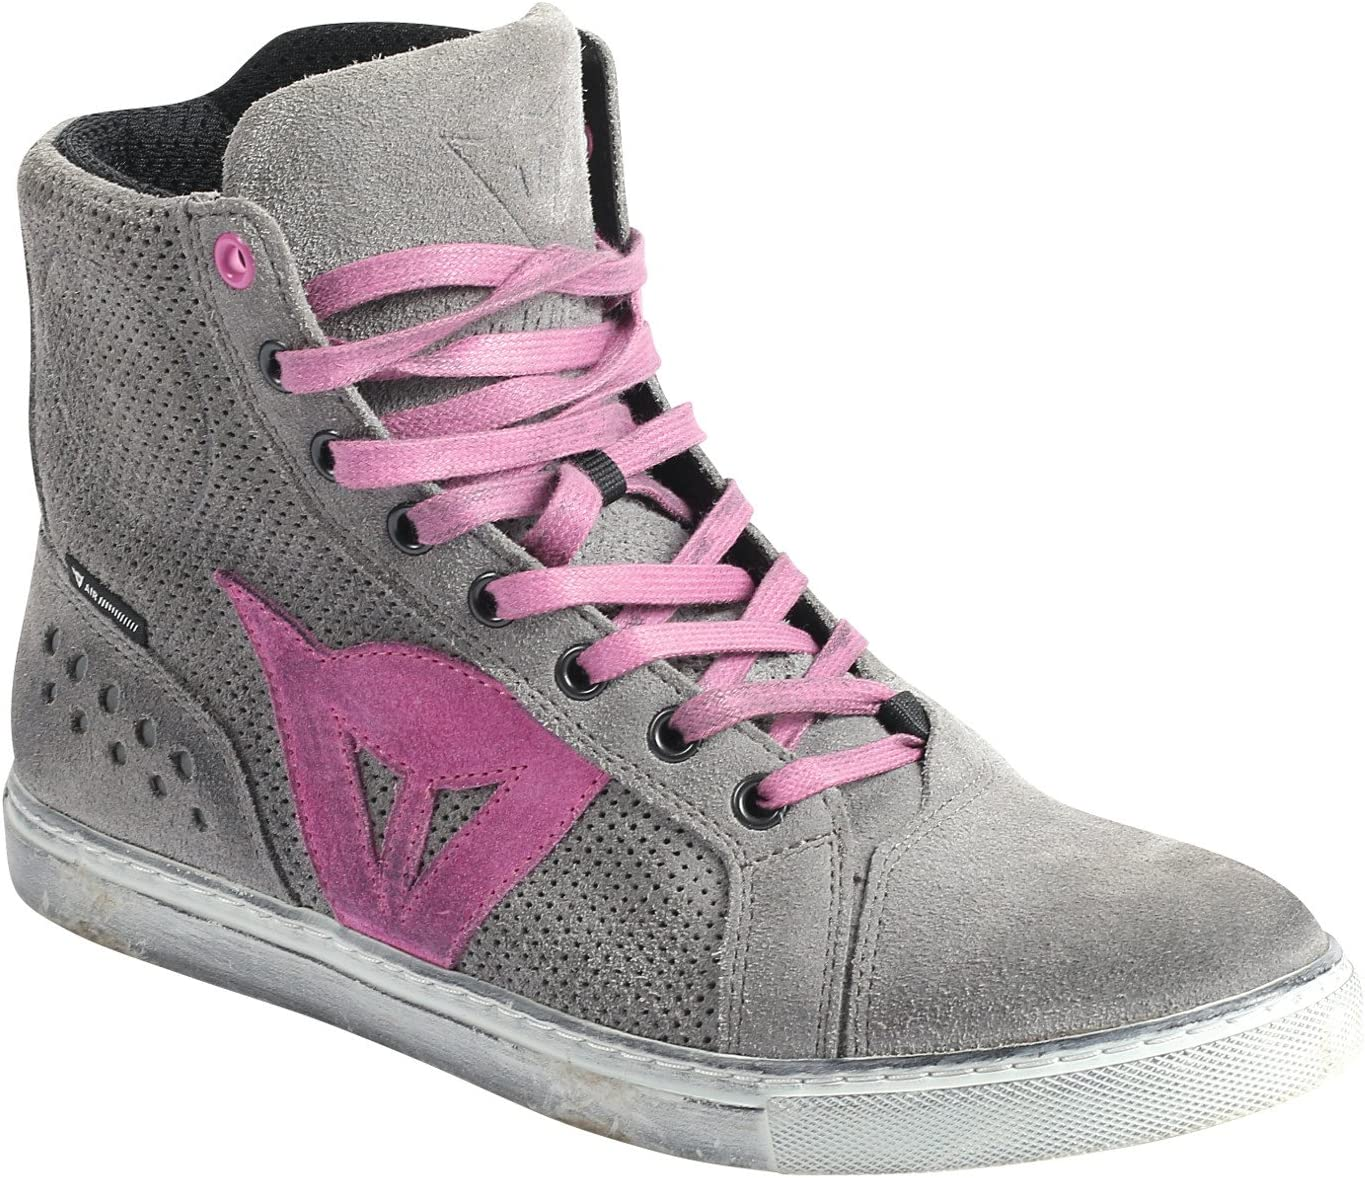 : Dainese Street Biker Air Lady Shoes Chaussures